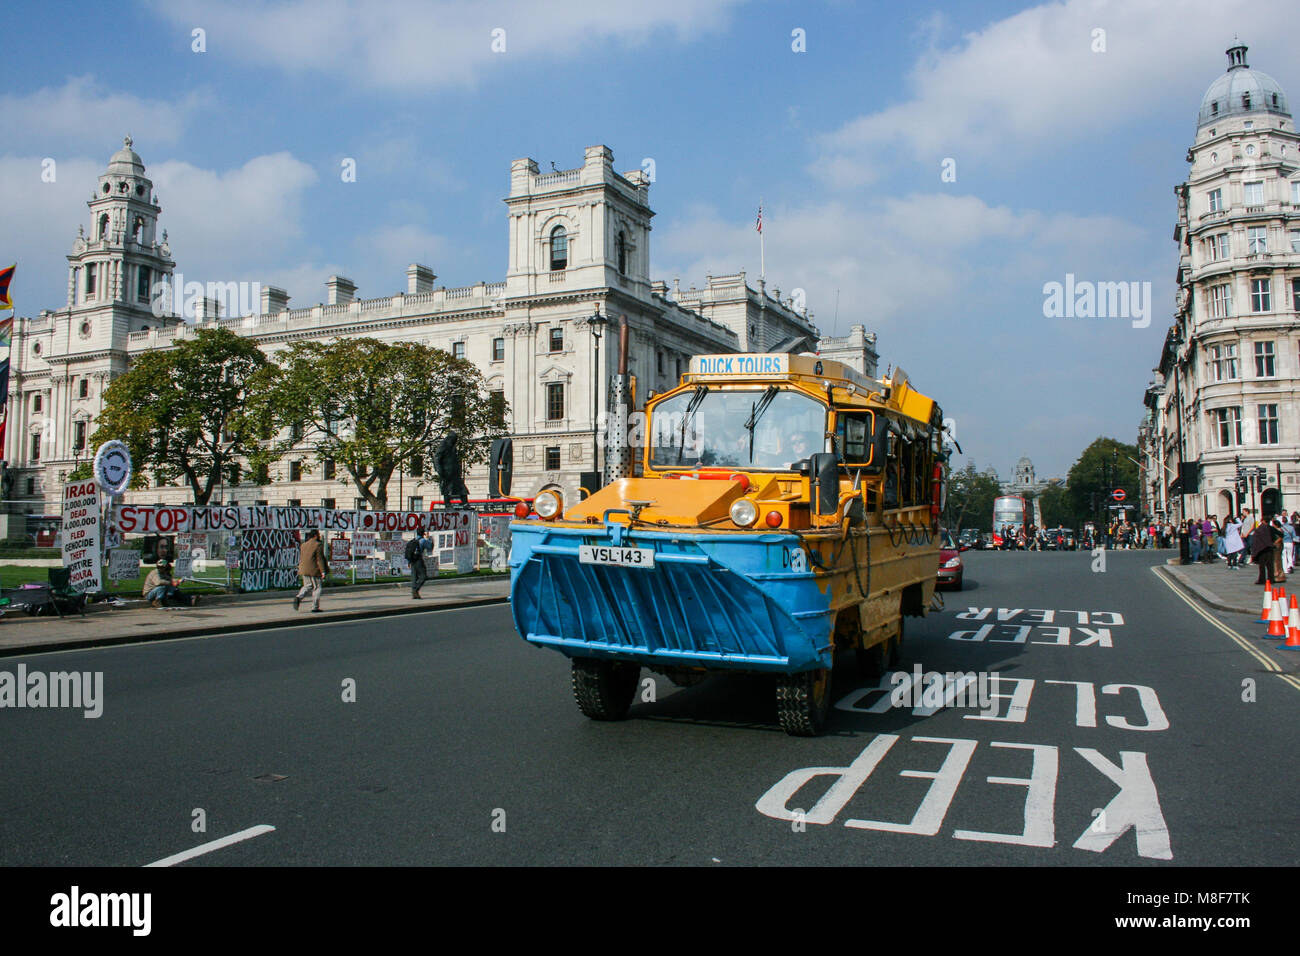 London Duck Tours near the Palace of Westminster, not operating since late 2017 due to Thames Water's construction - Stock Image